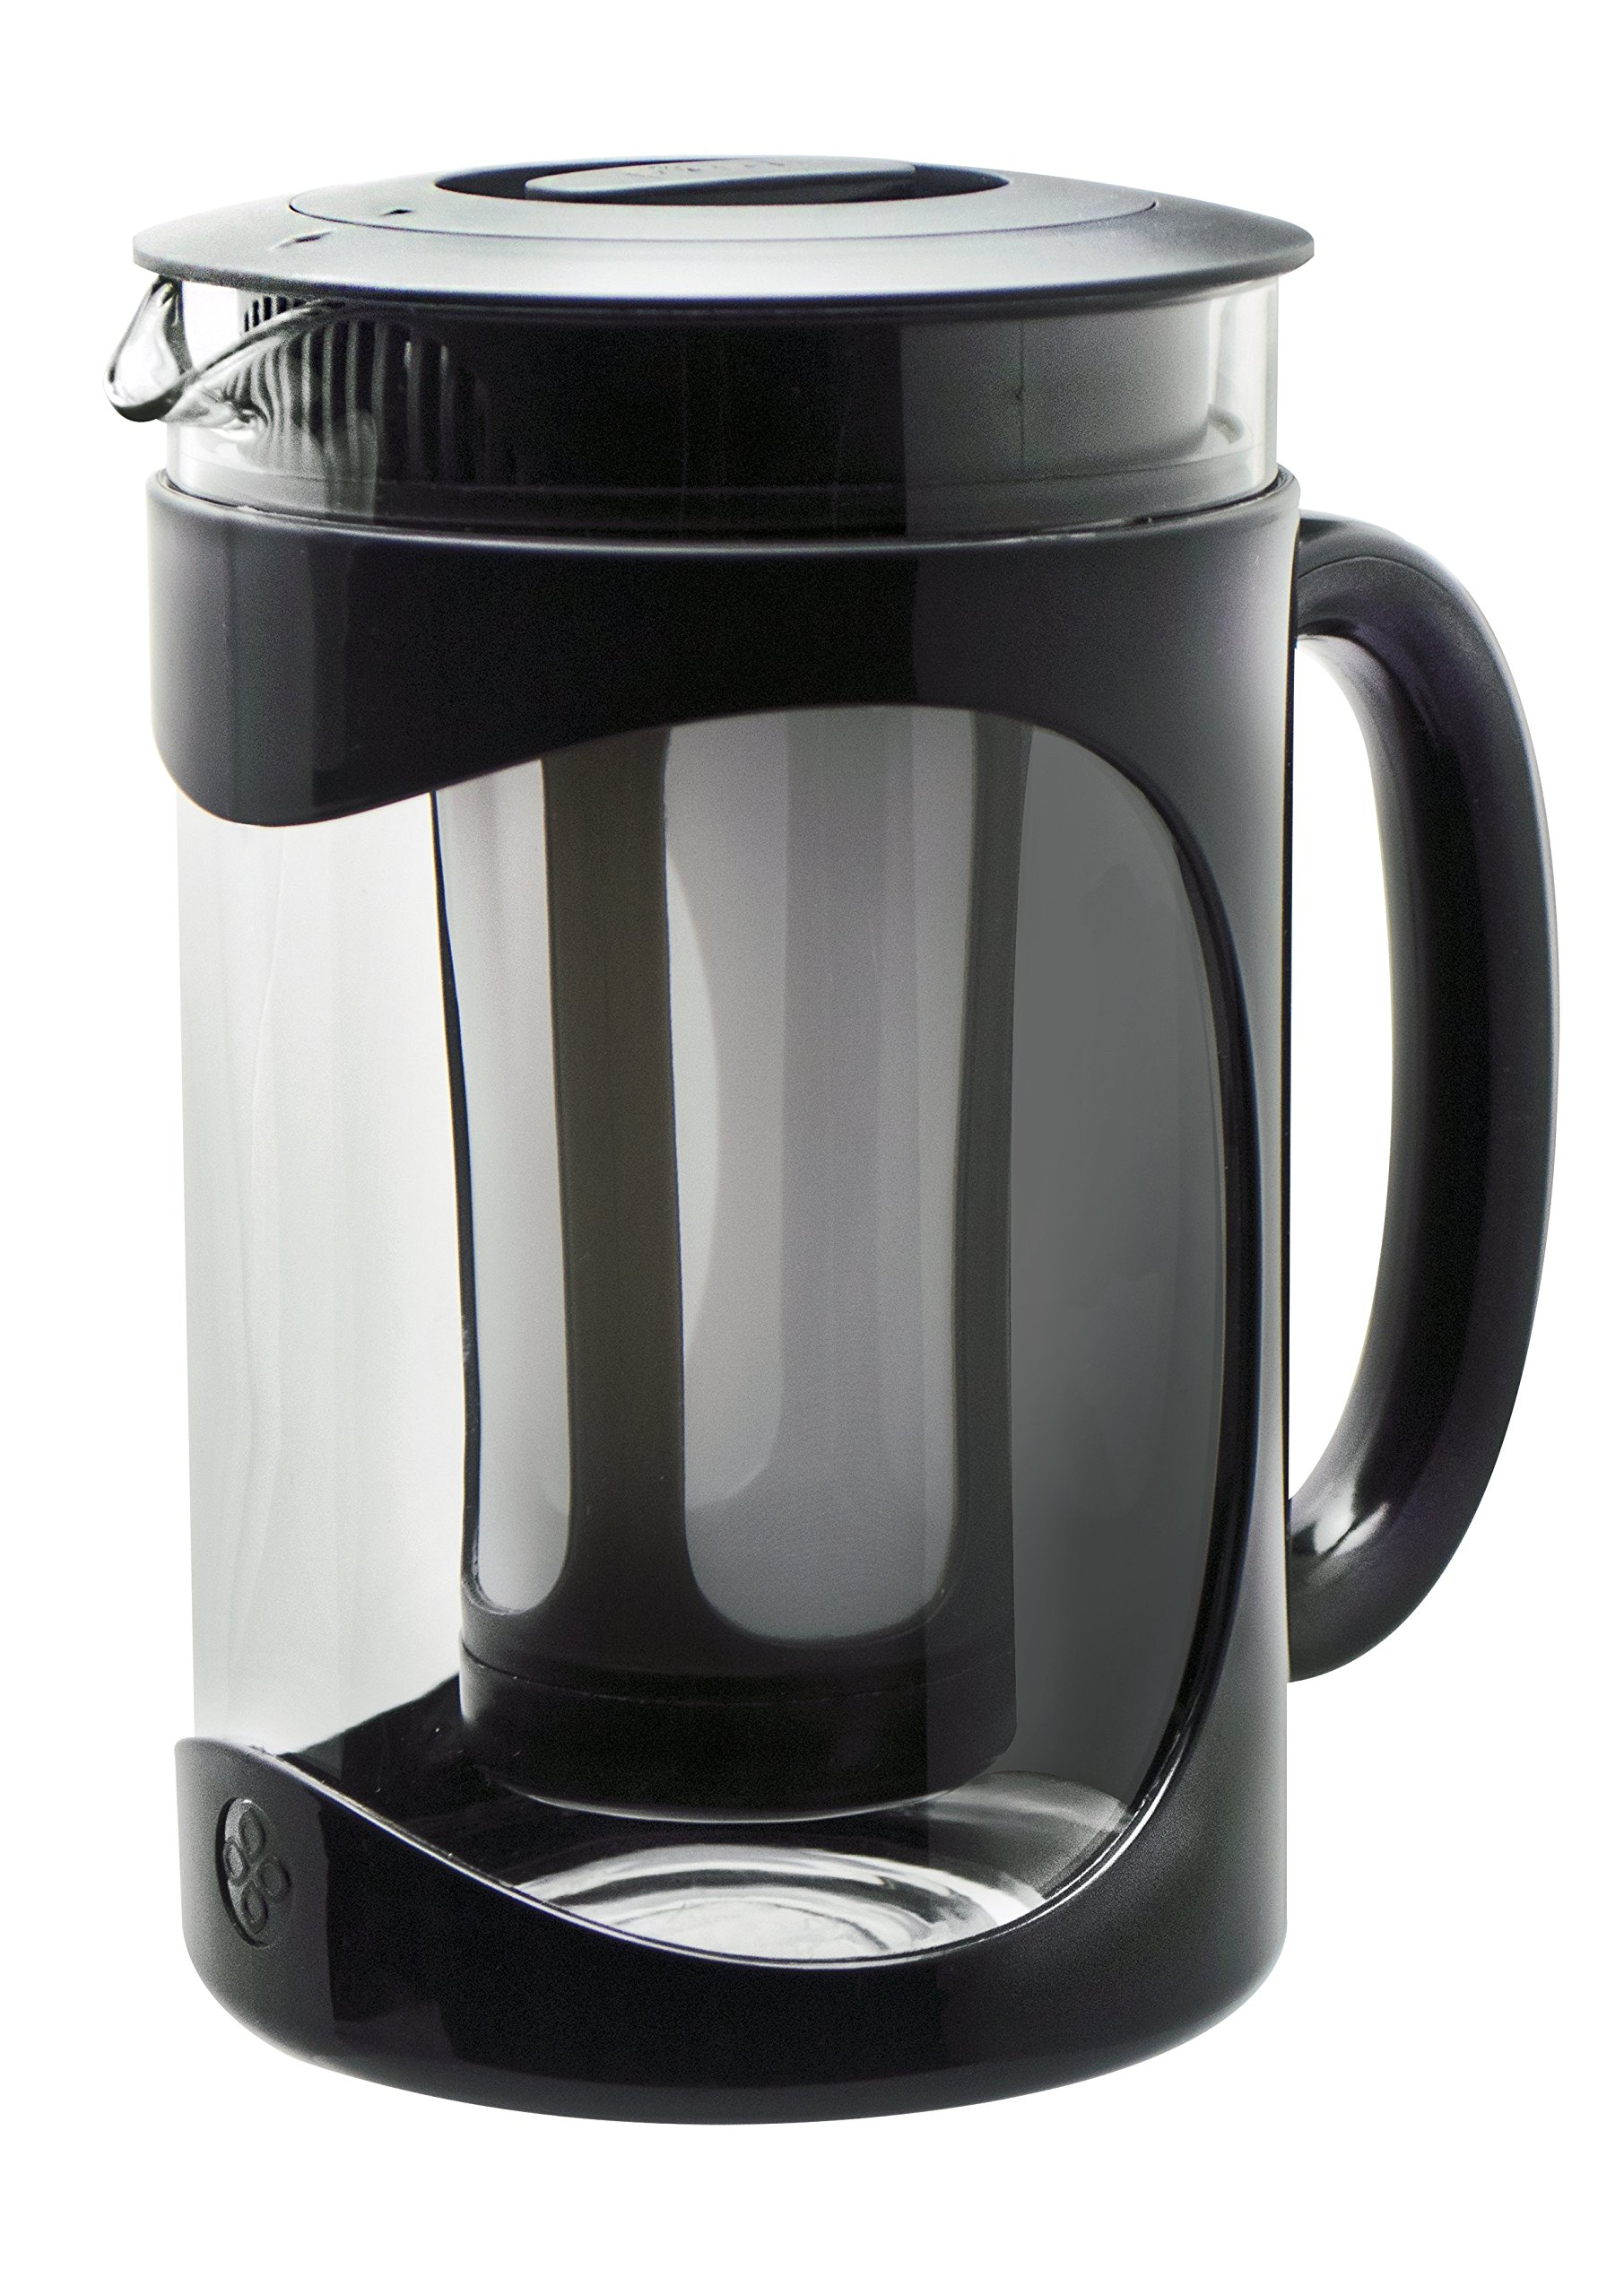 Primula PBPBK-5101 Burke Cold Brew Maker, Black